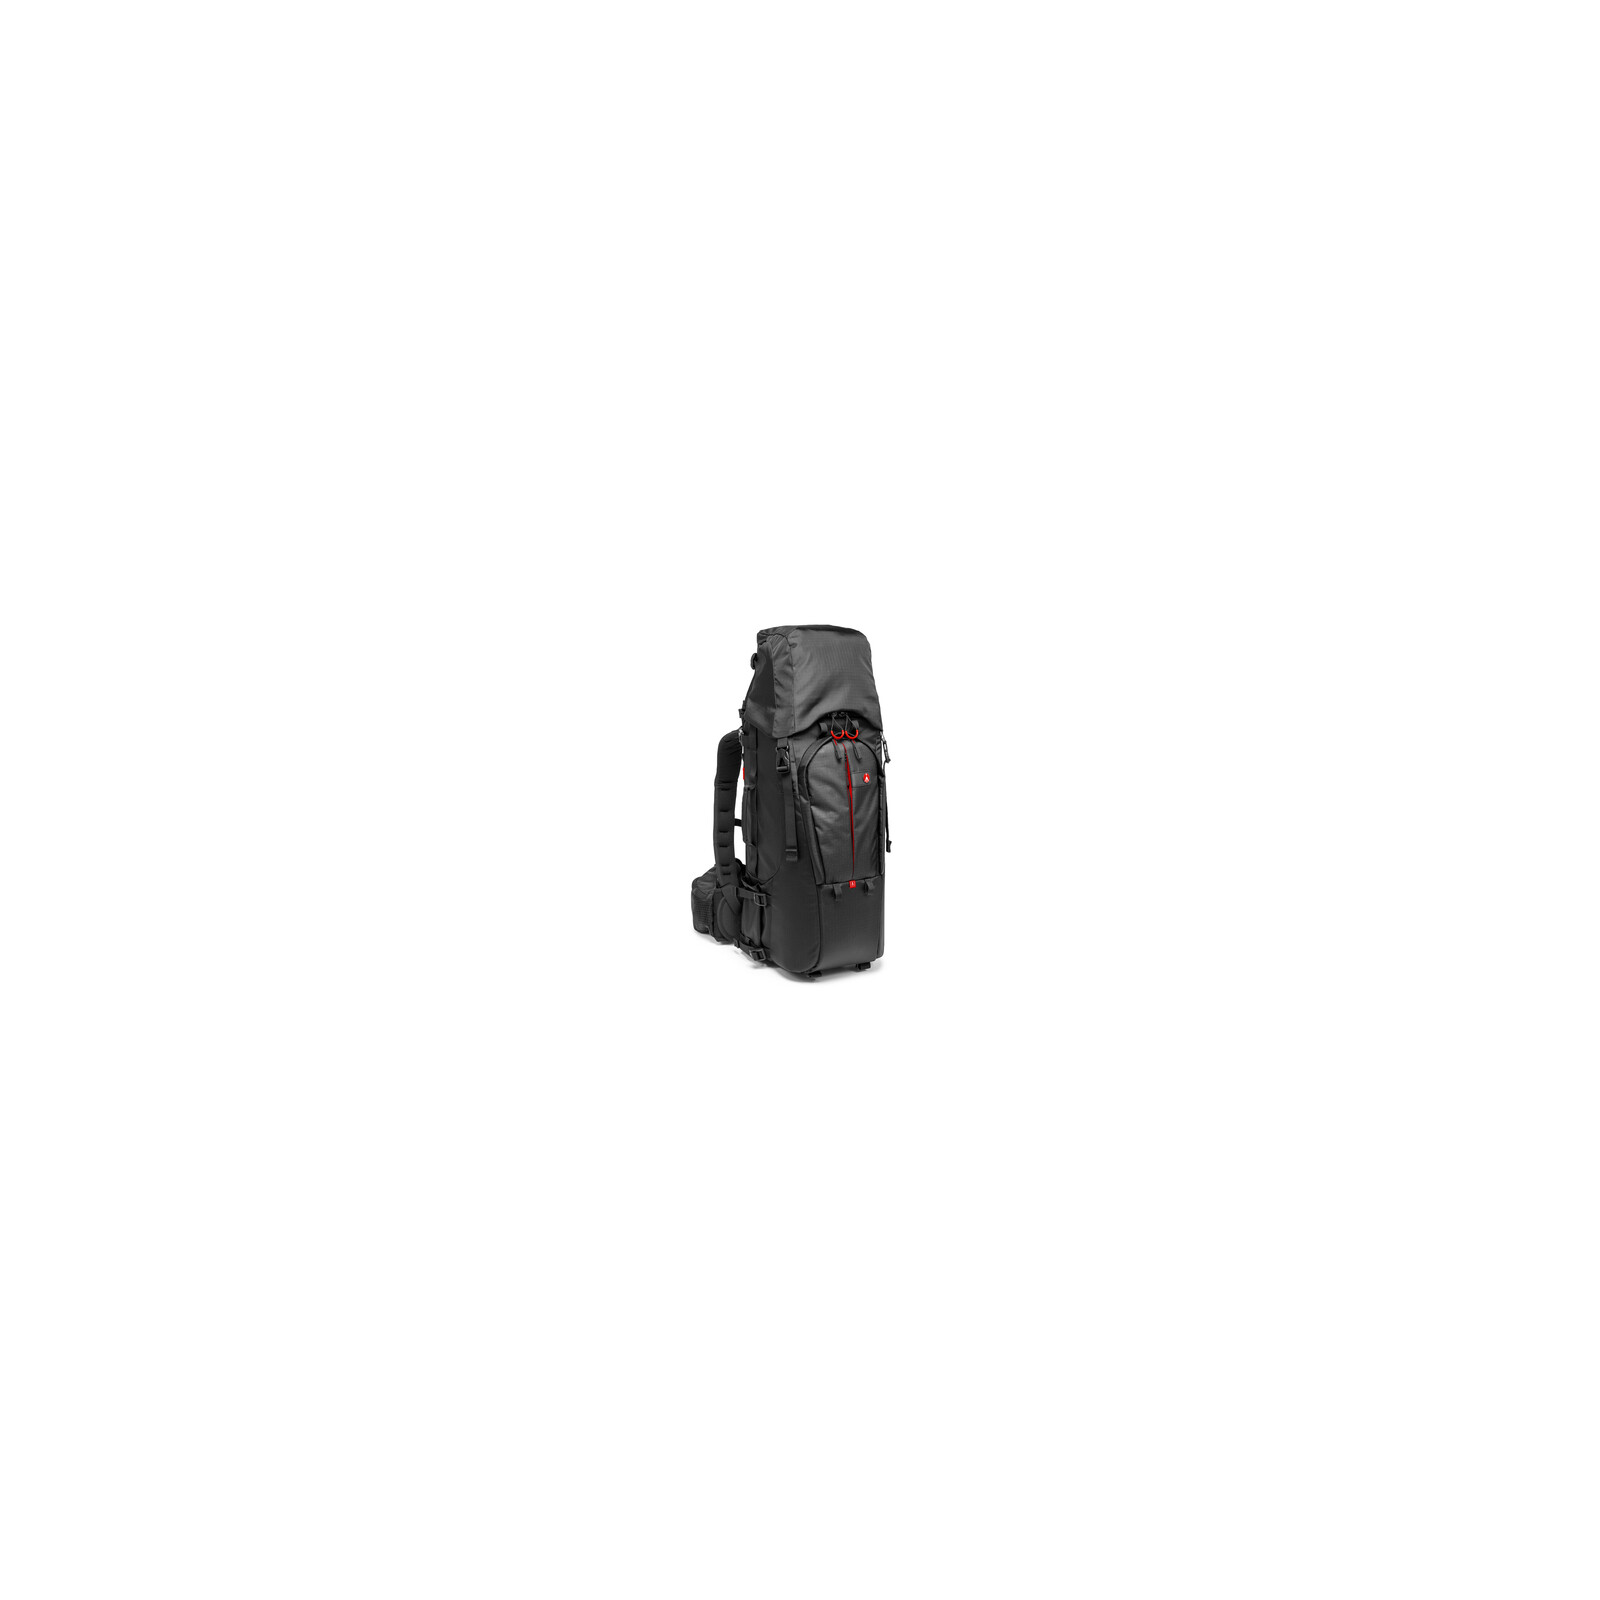 Manfrotto TLB-600 PL Pro Light Rucksack